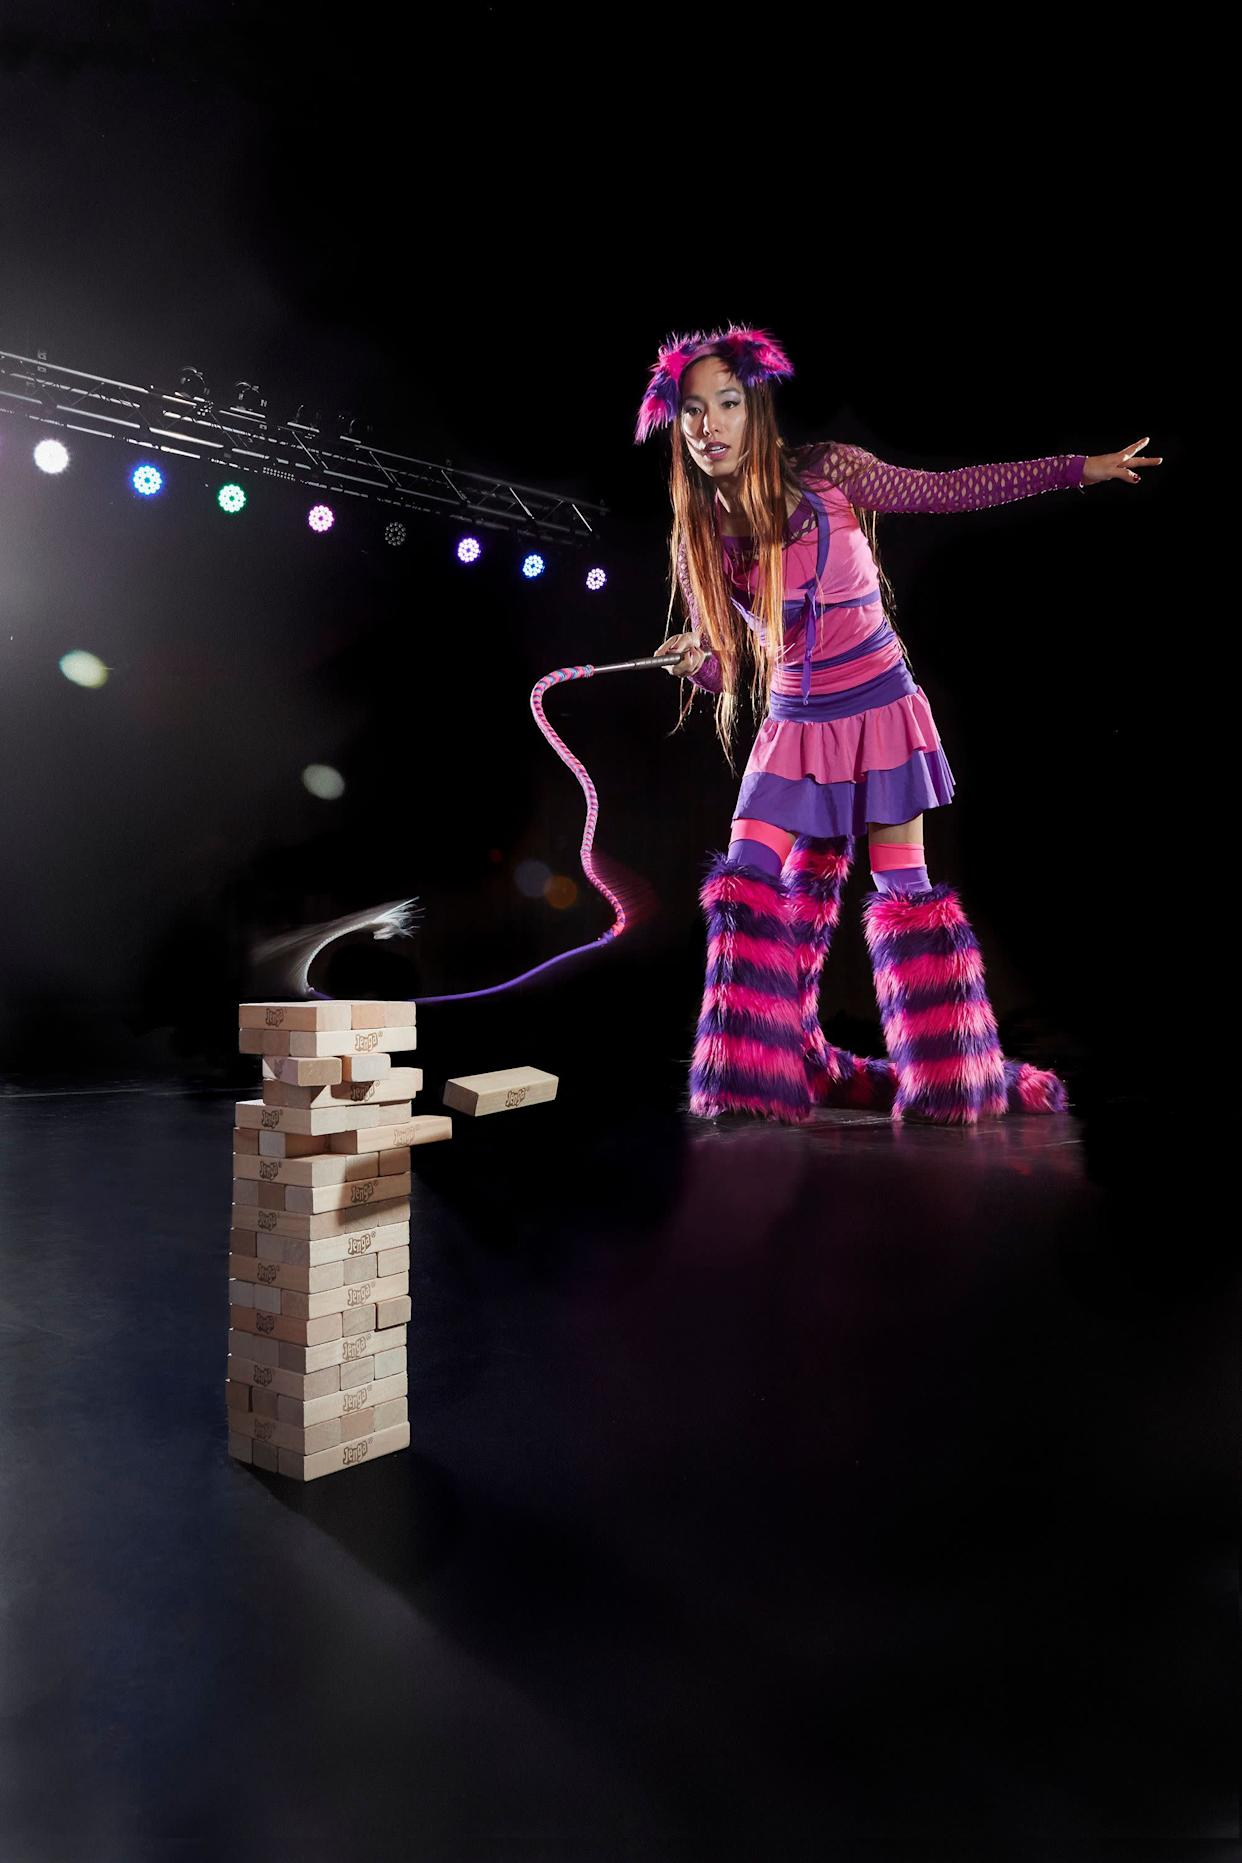 April Choi holds the record for most Jenga blocks removed by whip in one minute: 4. She achieved the record in Peoria, Illinois, on Sept.27, 2016.